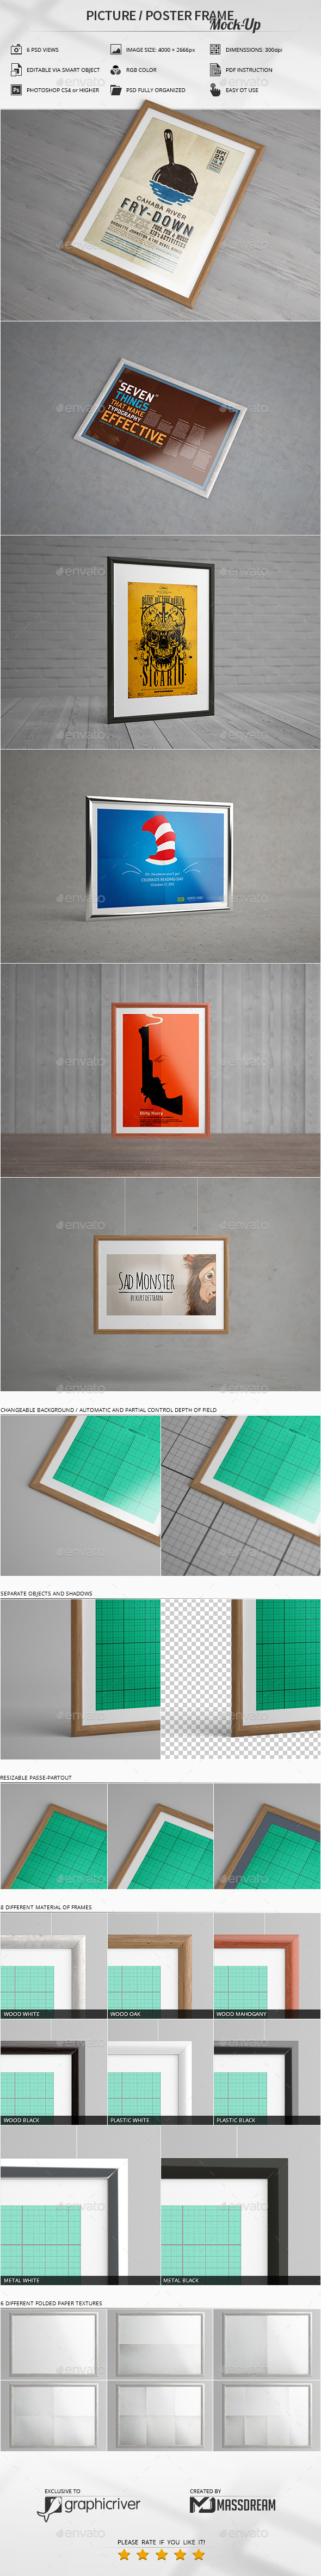 Picture / Poster Frame Mock-Up - Print Product Mock-Ups